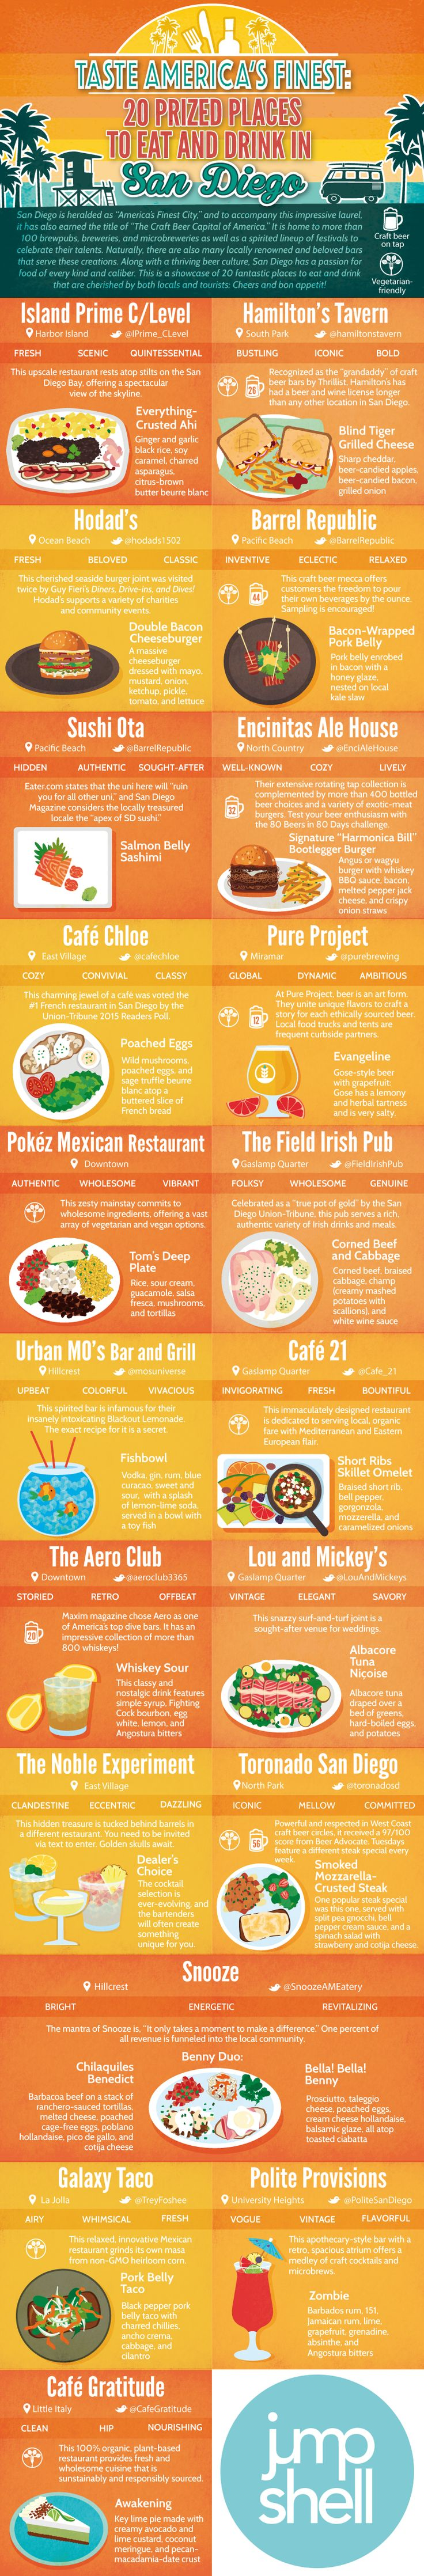 Taste America's Finest: 20 Prized Places to Eat and Drink in San Diego #Infographic ~ Visualistan